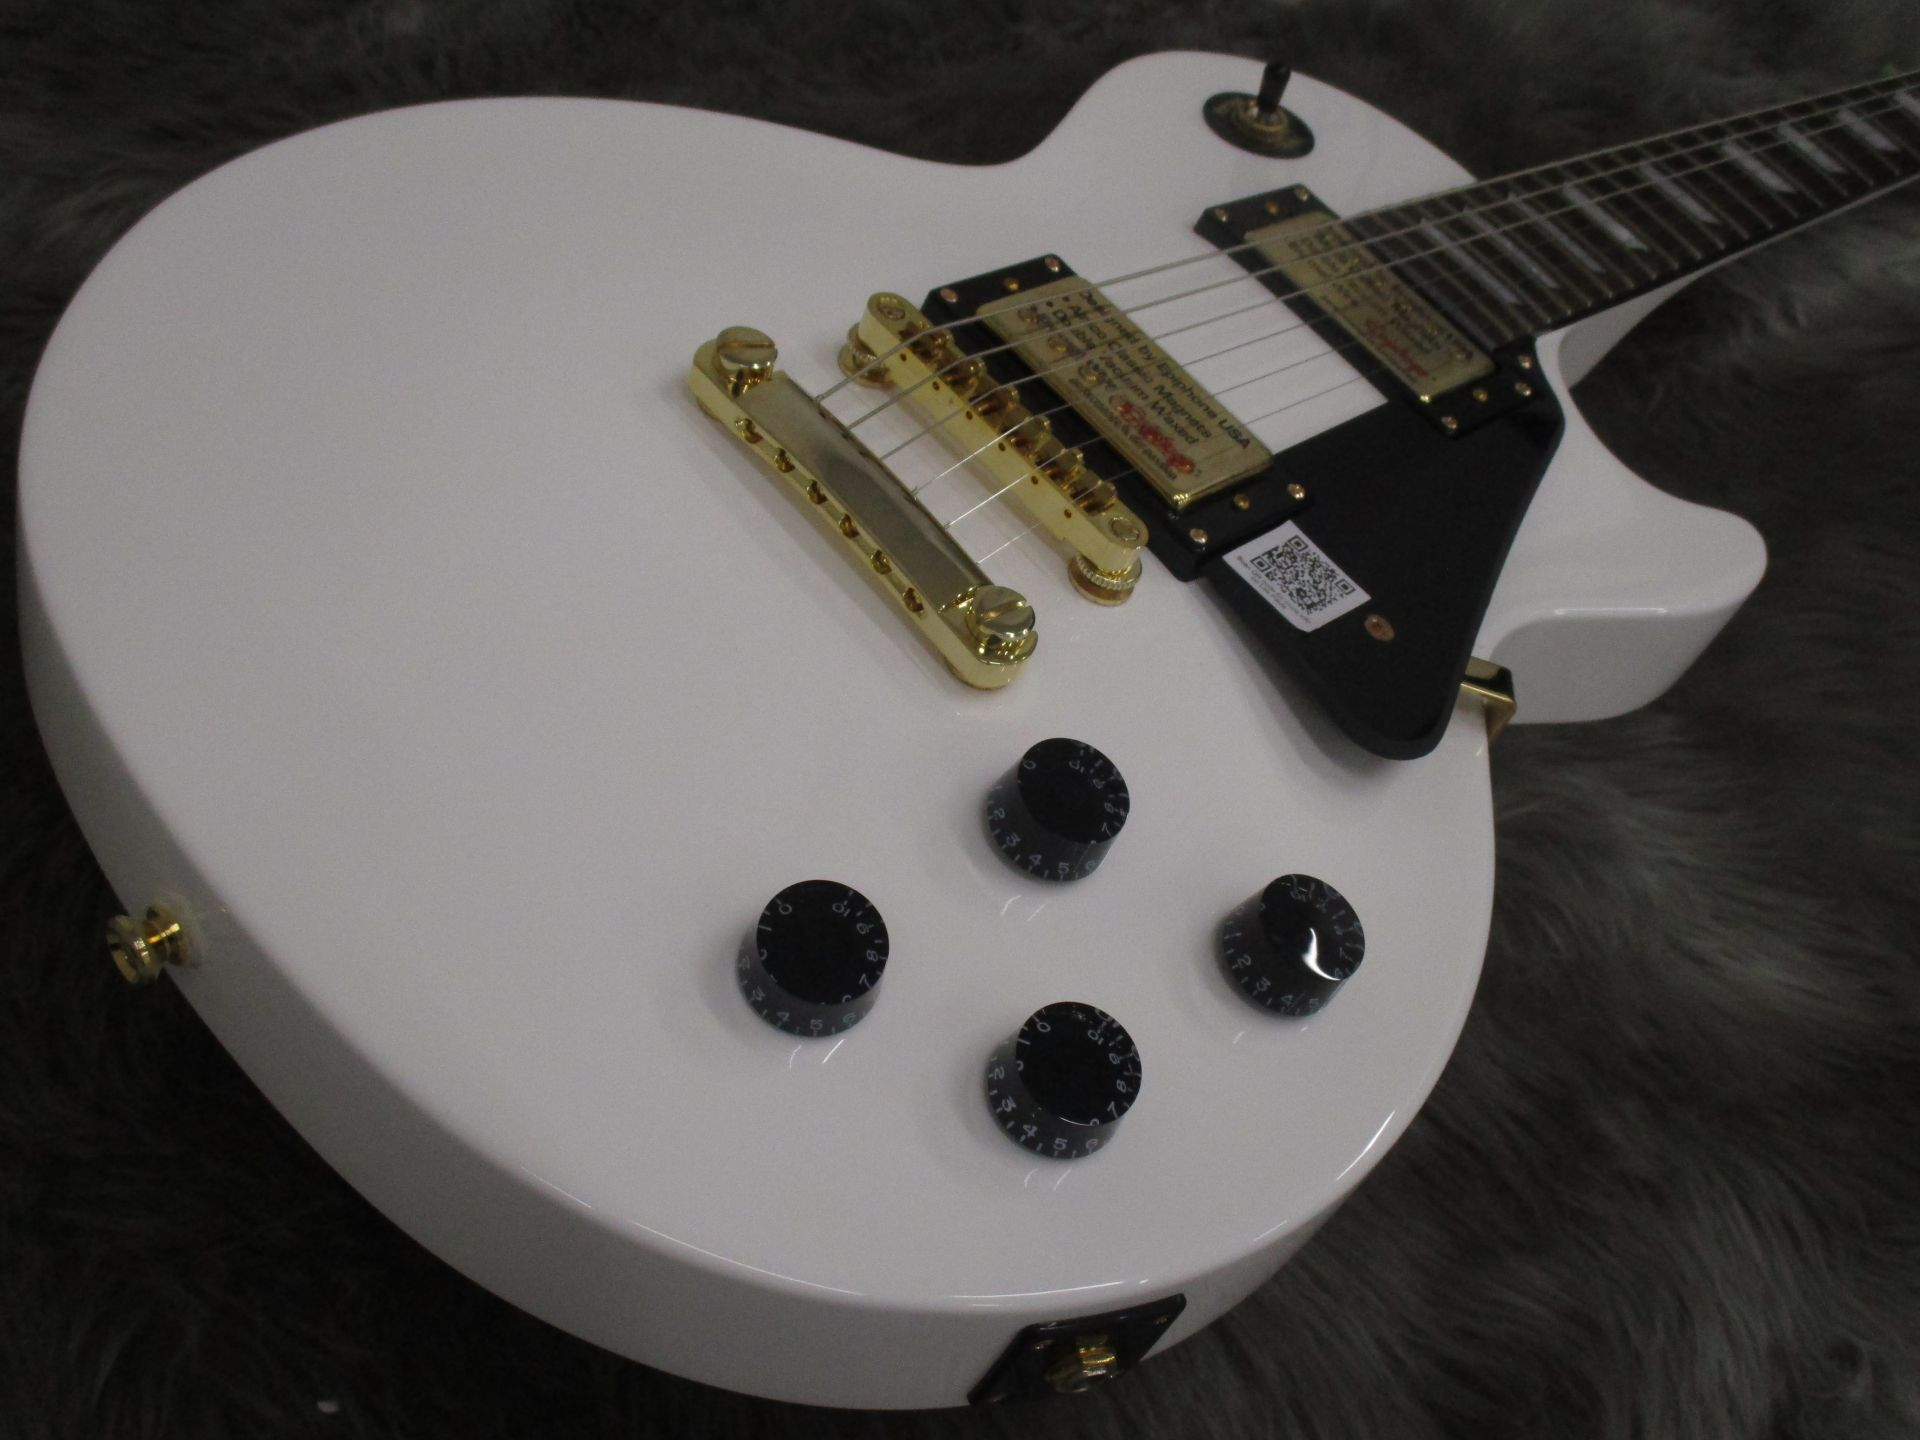 Limited Les Paul Studio Deluxe Alpine Whiteのケース・その他画像